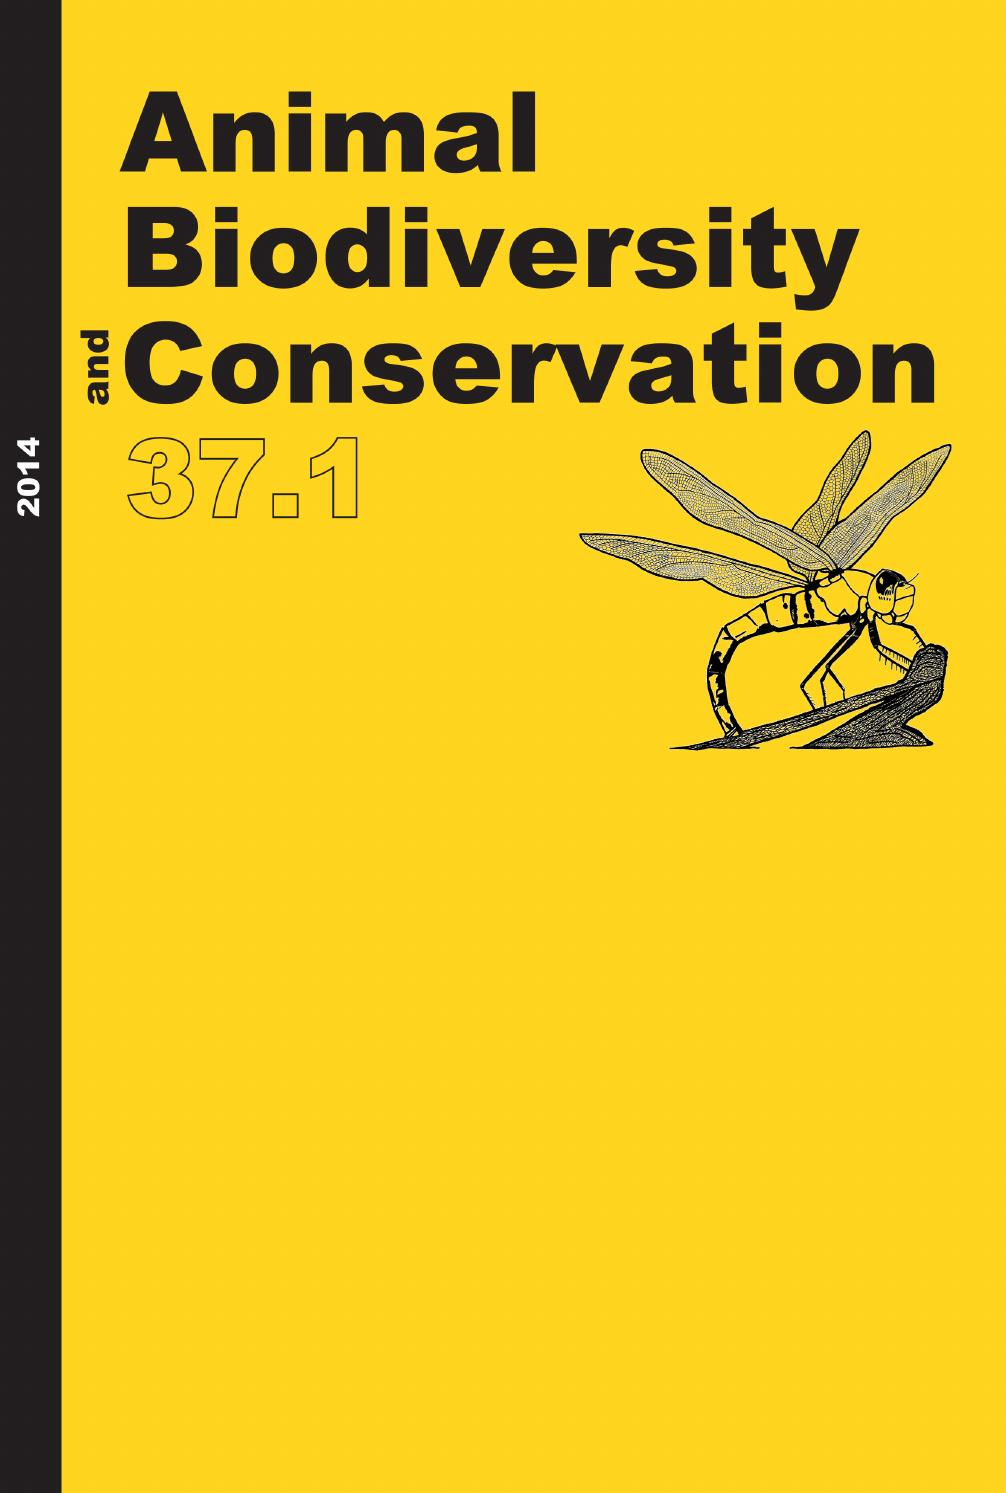 b624bafcd Animal Biodiversity and Conservation issue 37.1 (2014) by Museu Ciències  Naturals de Barcelona MCNB - issuu